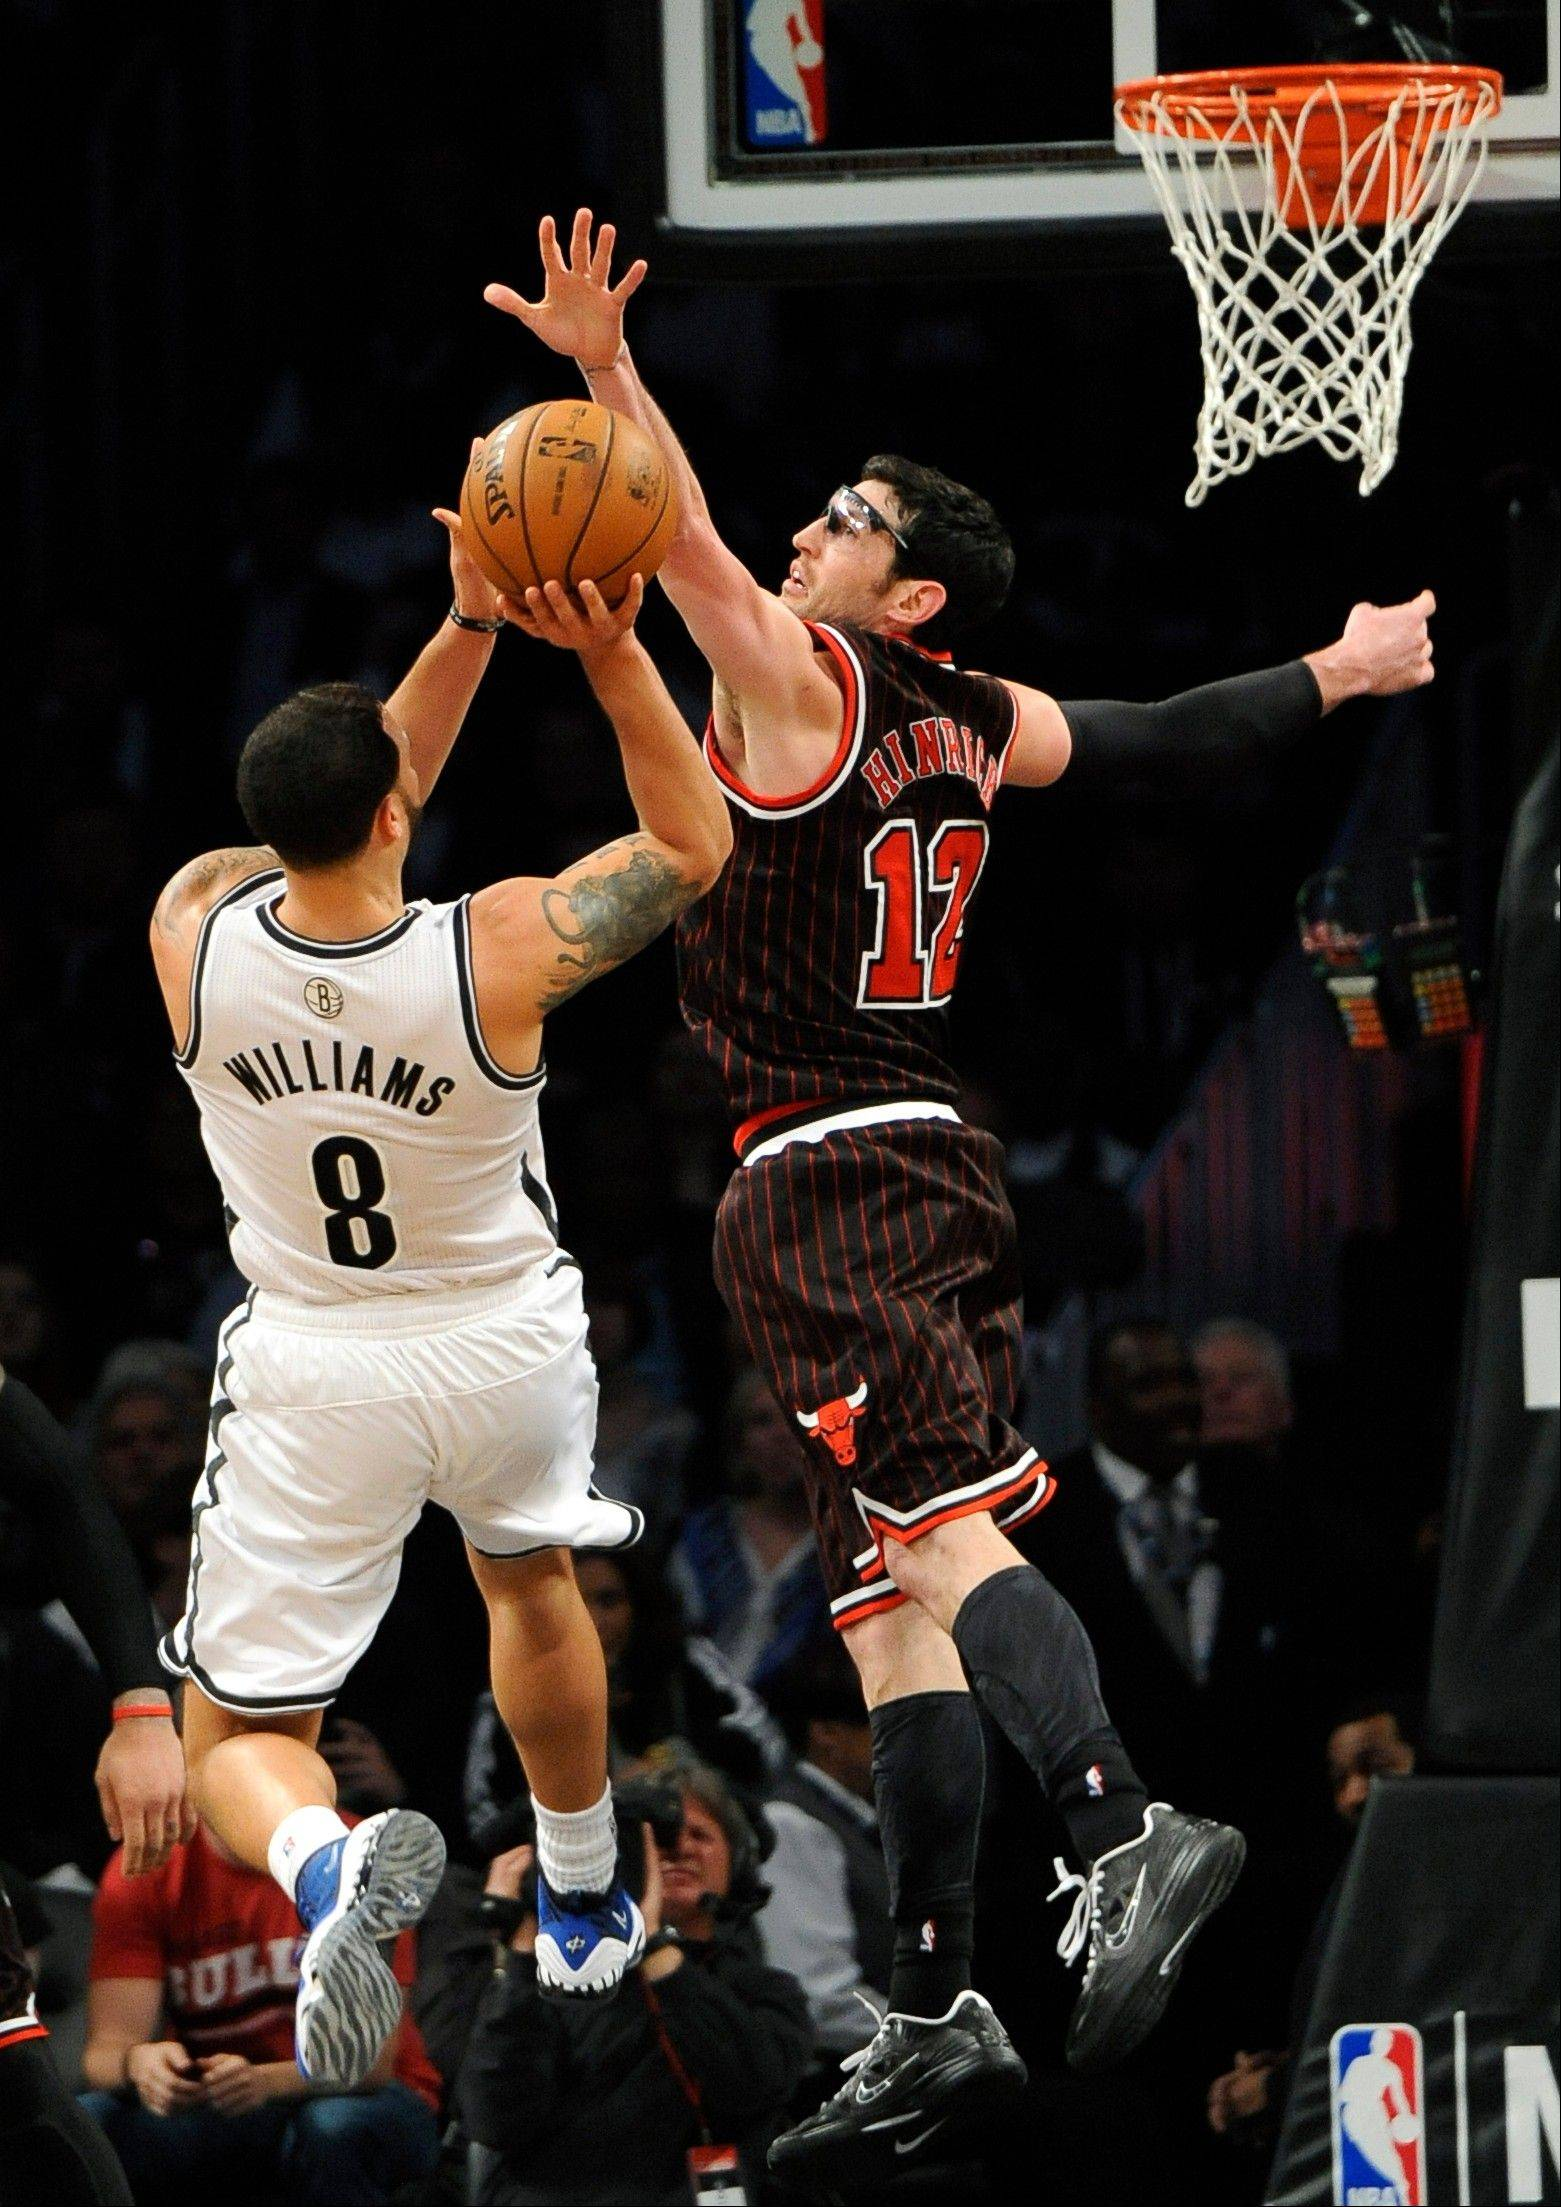 Kirk Hinrich (12) blocks the shot of Brooklyn Nets' Deron Williams (8) in the second half of an NBA basketball game on Thursday, April 4, 2013, at Barclays Center in New York. The Bulls won 92-90.